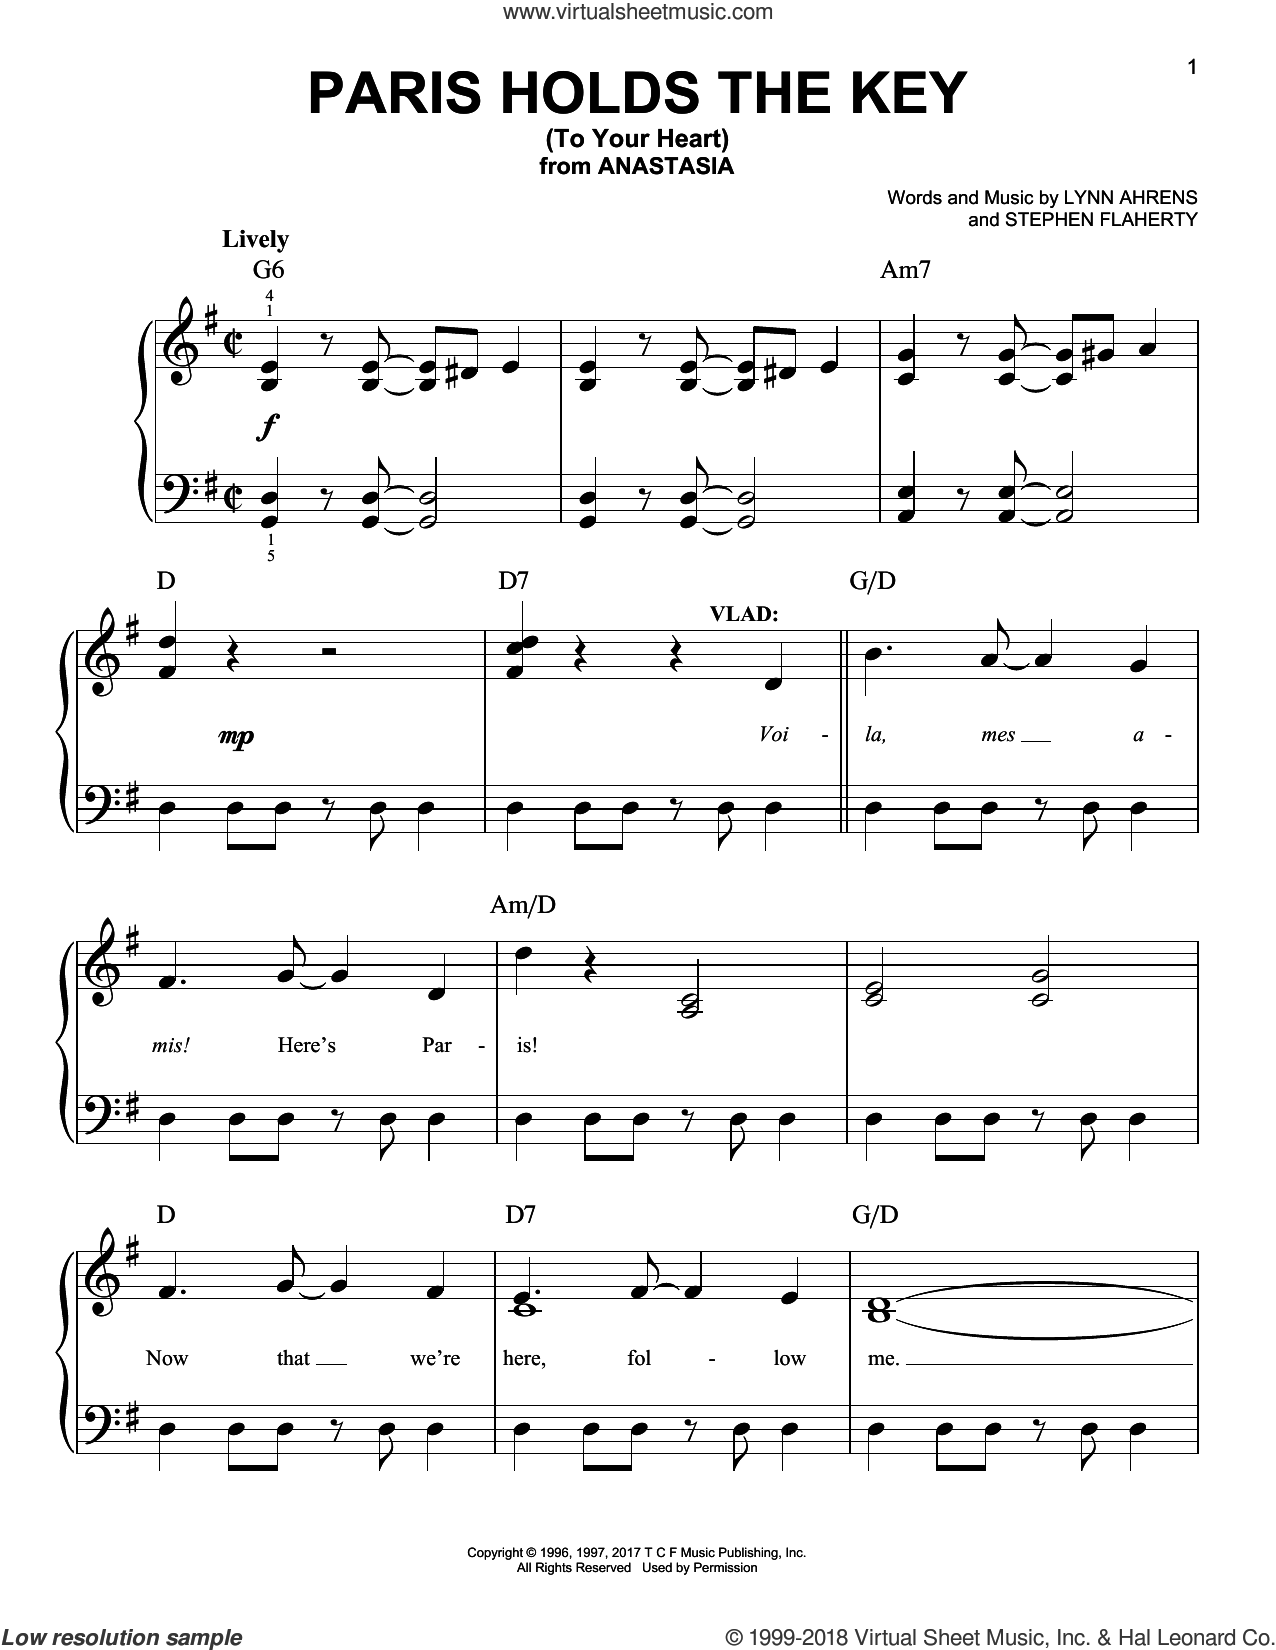 Paris Holds The Key (To Your Heart) sheet music for piano solo by Stephen Flaherty and Lynn Ahrens, easy skill level